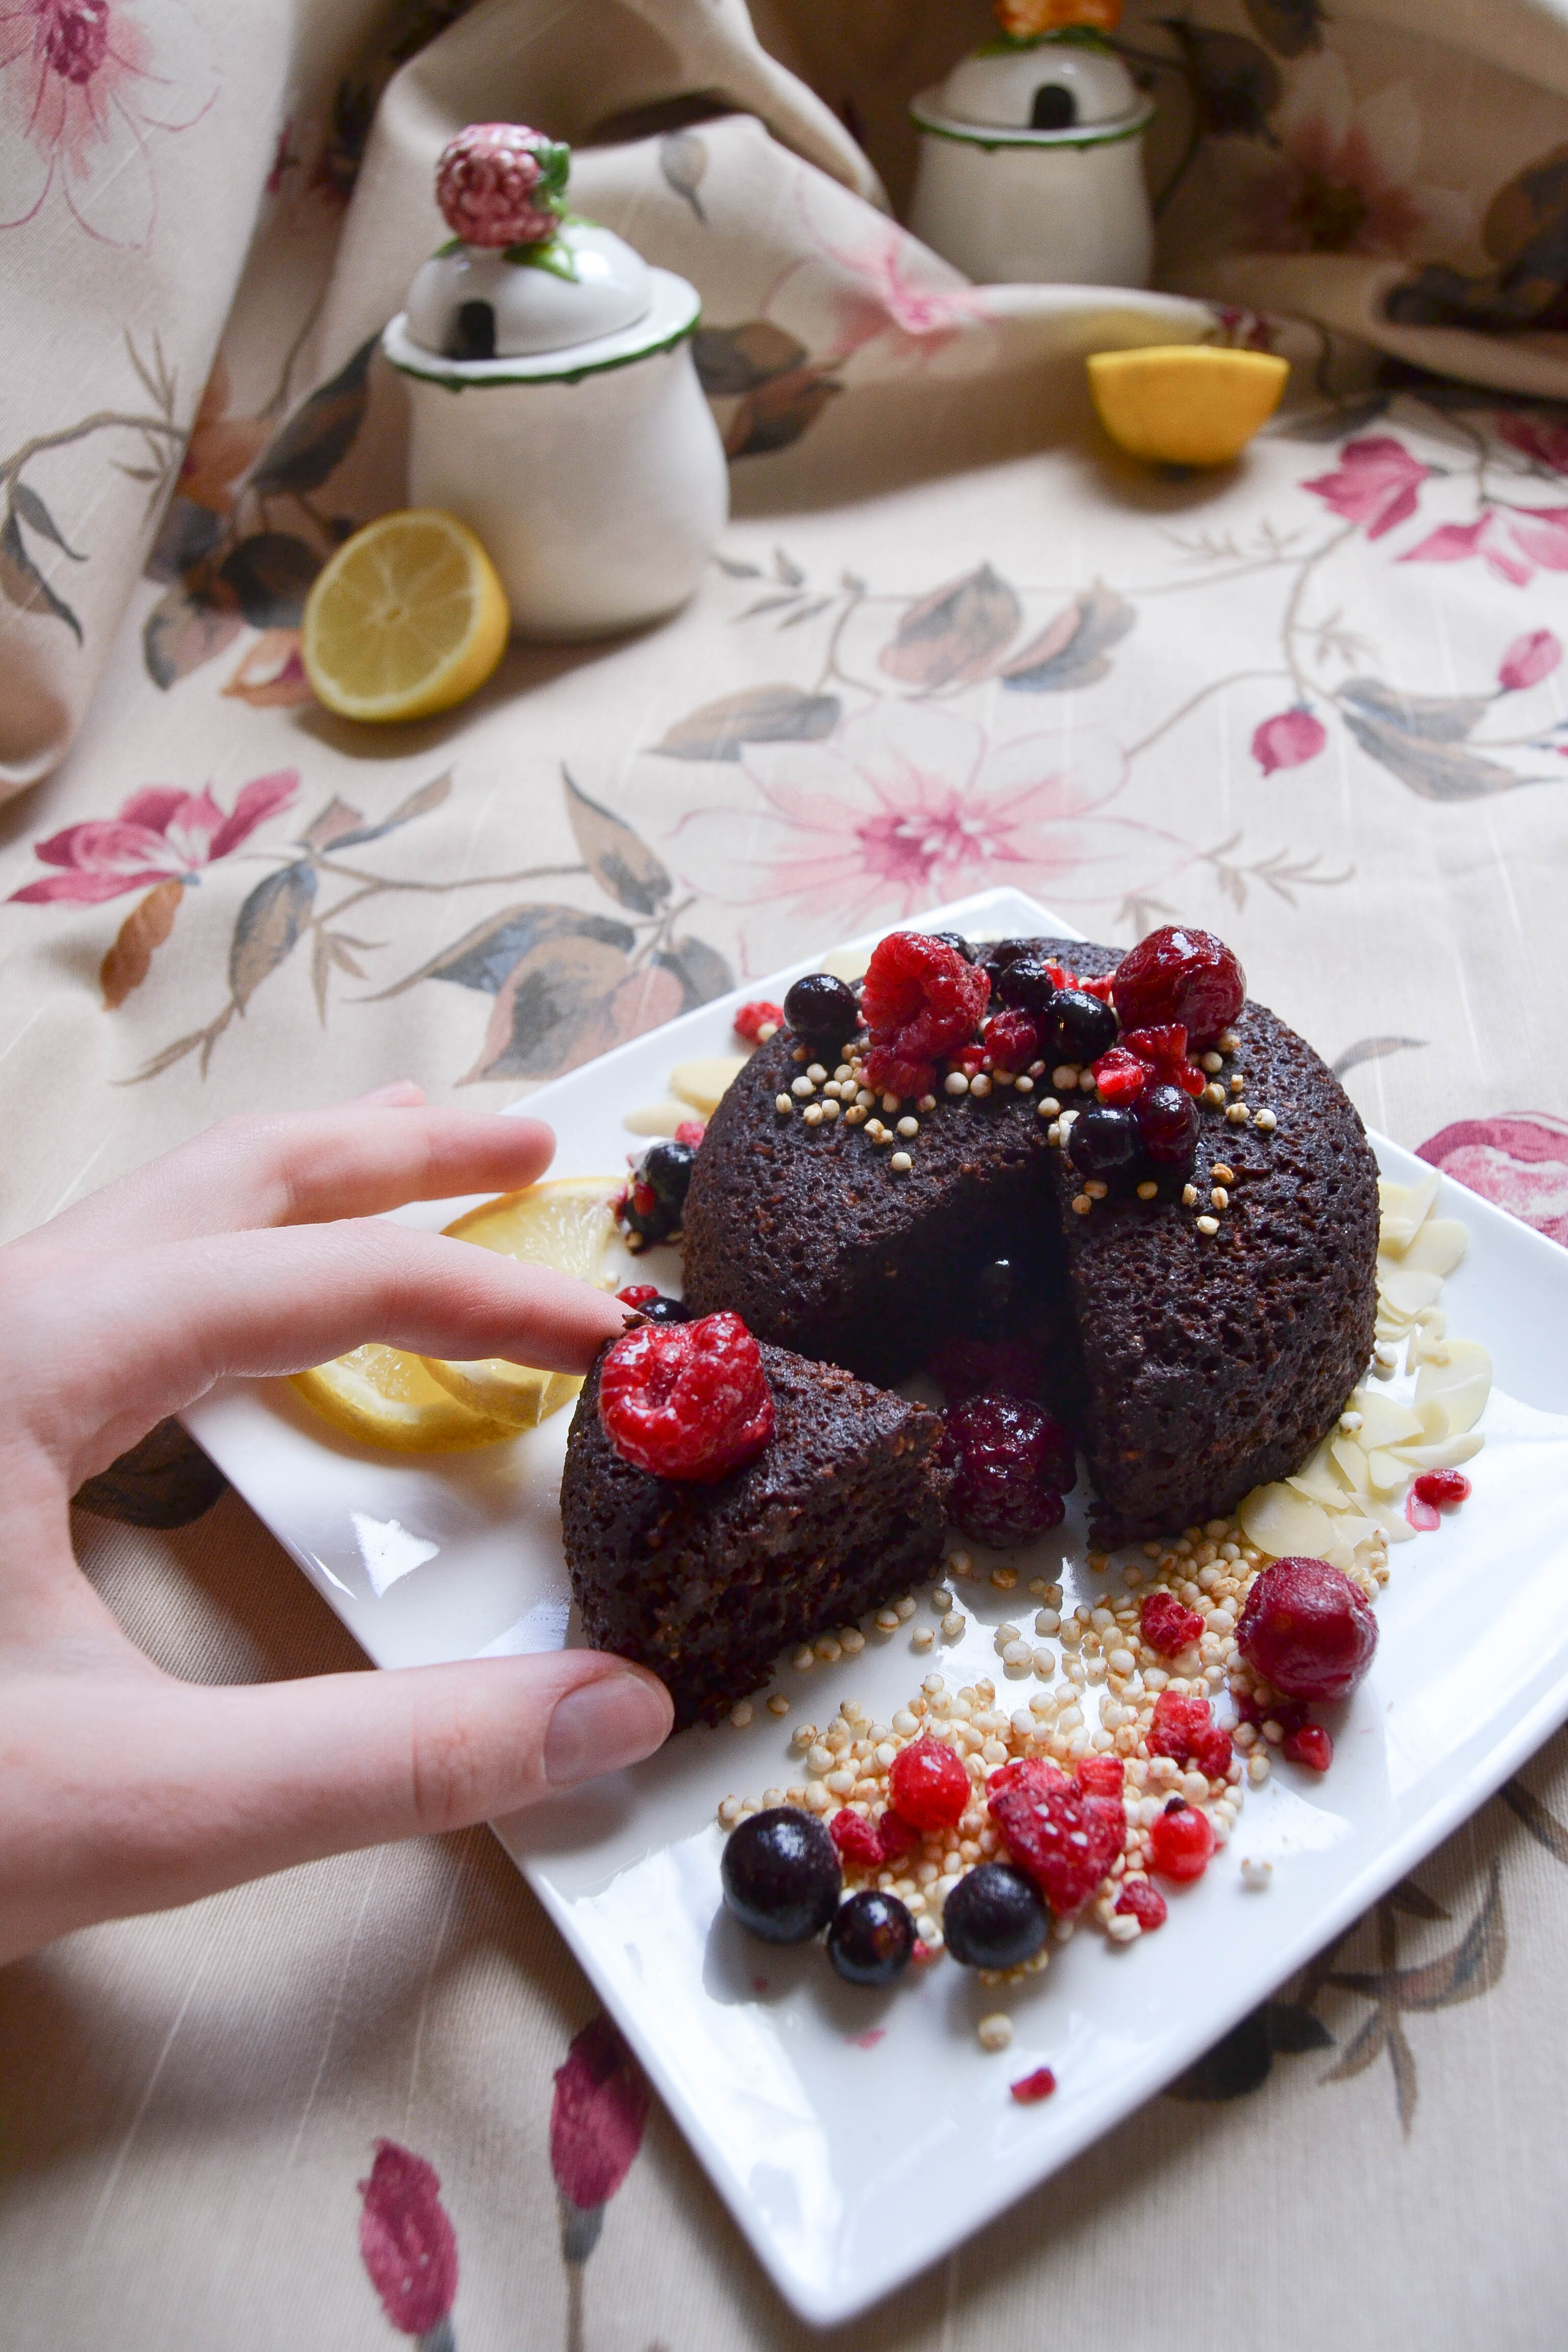 delicious chocolate mugcake with berries